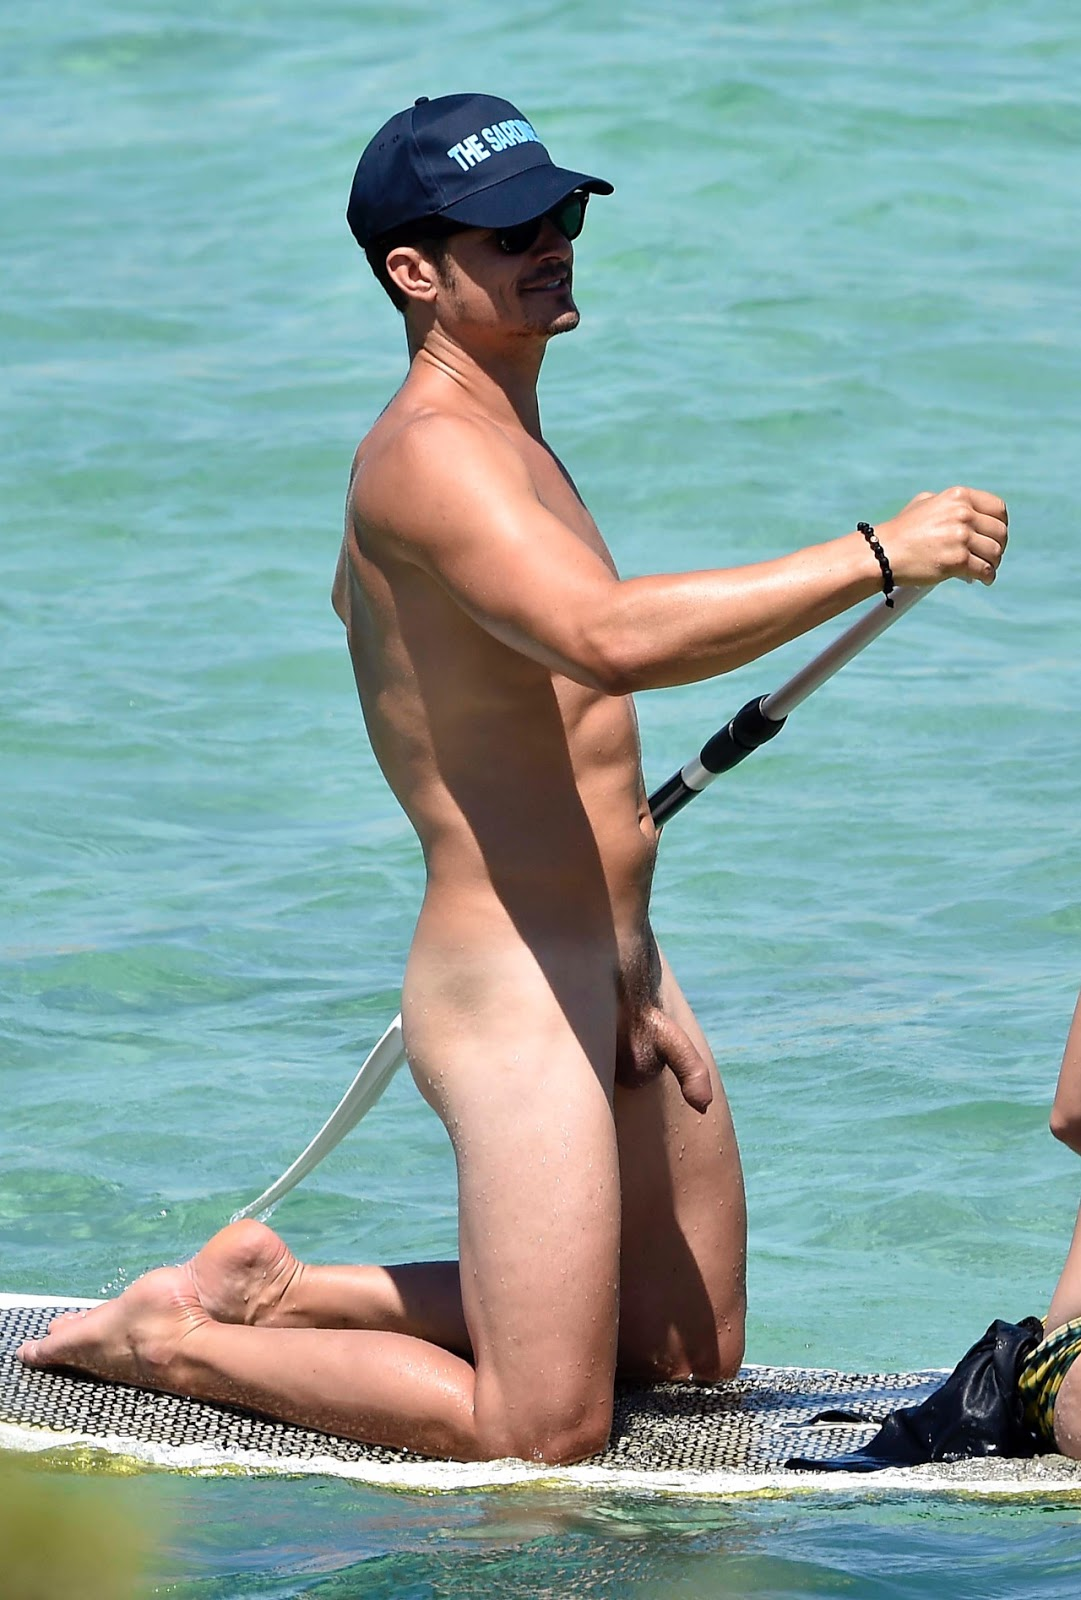 Uncensored Nude Pictures Of Orlando Bloom